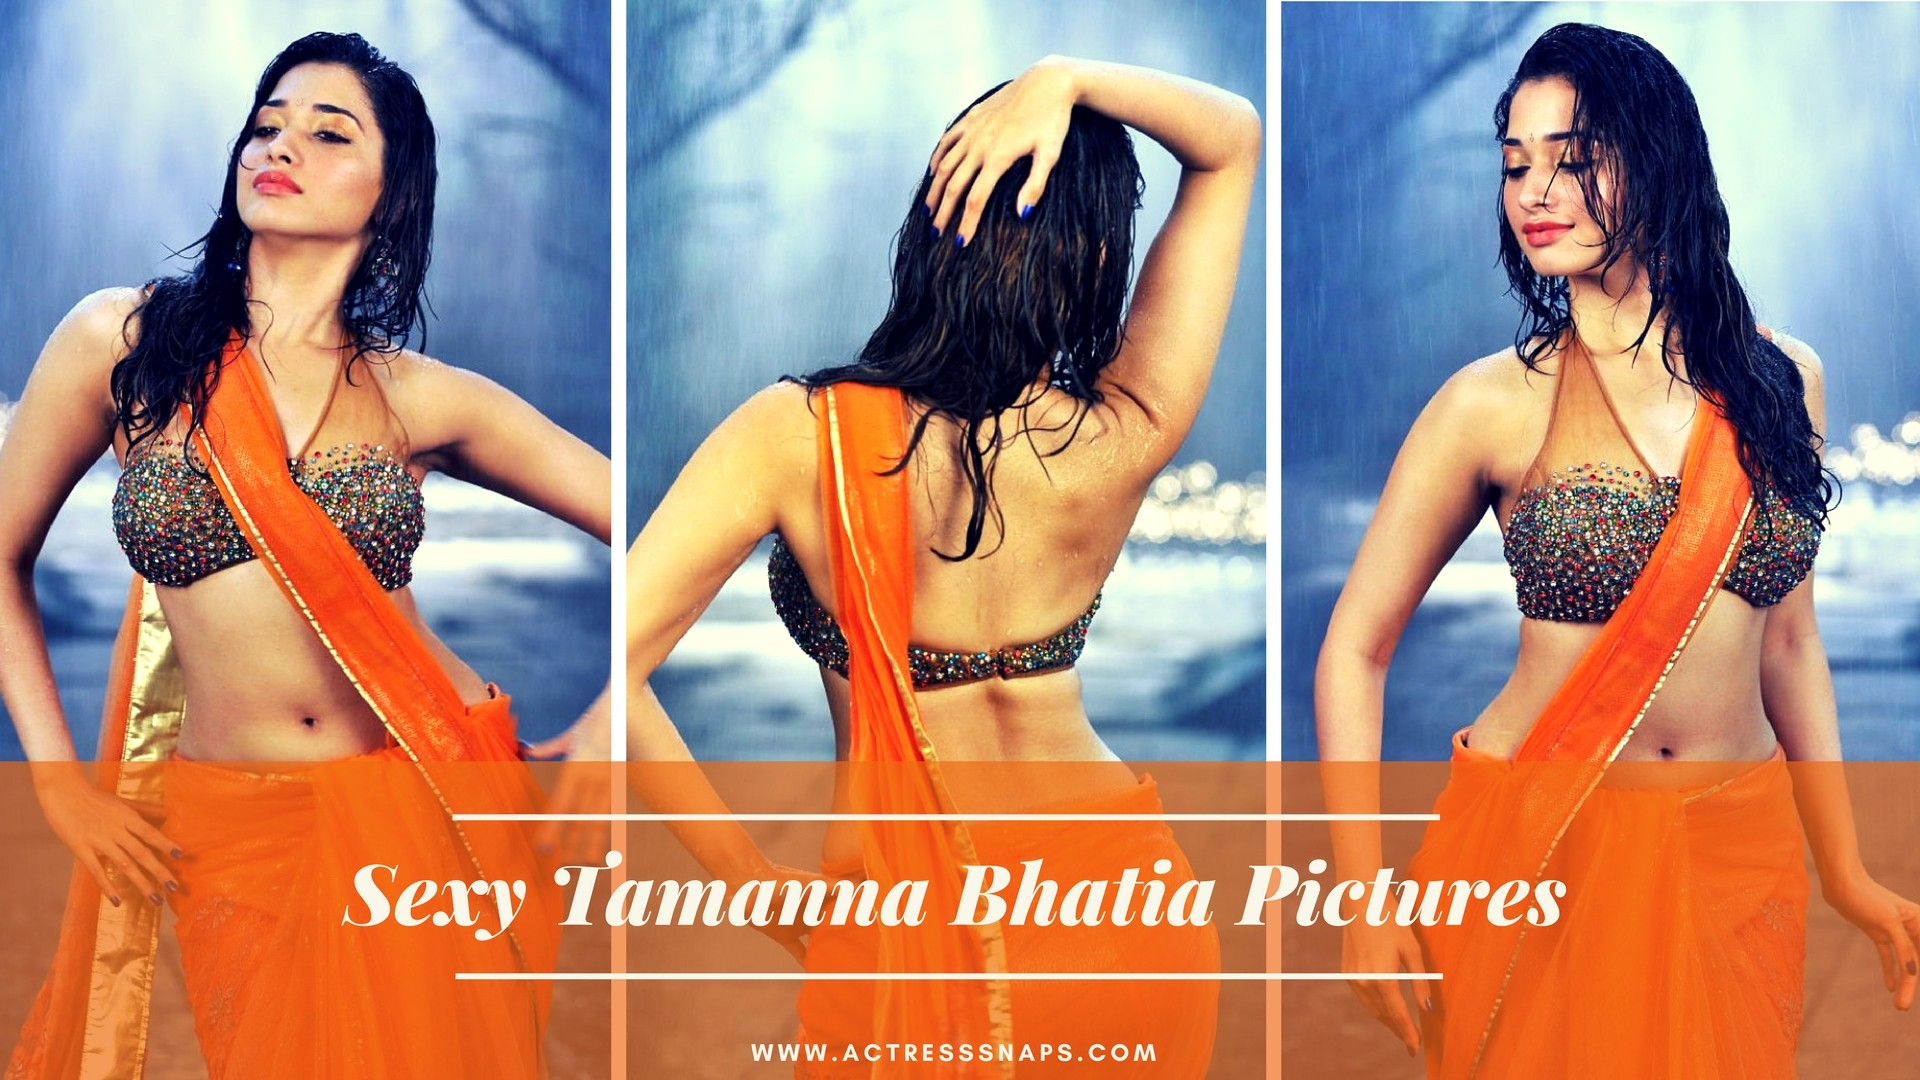 21 Sexy Tamanna Saree Pictures - Sexy Actress Pictures | Hot Actress Pictures